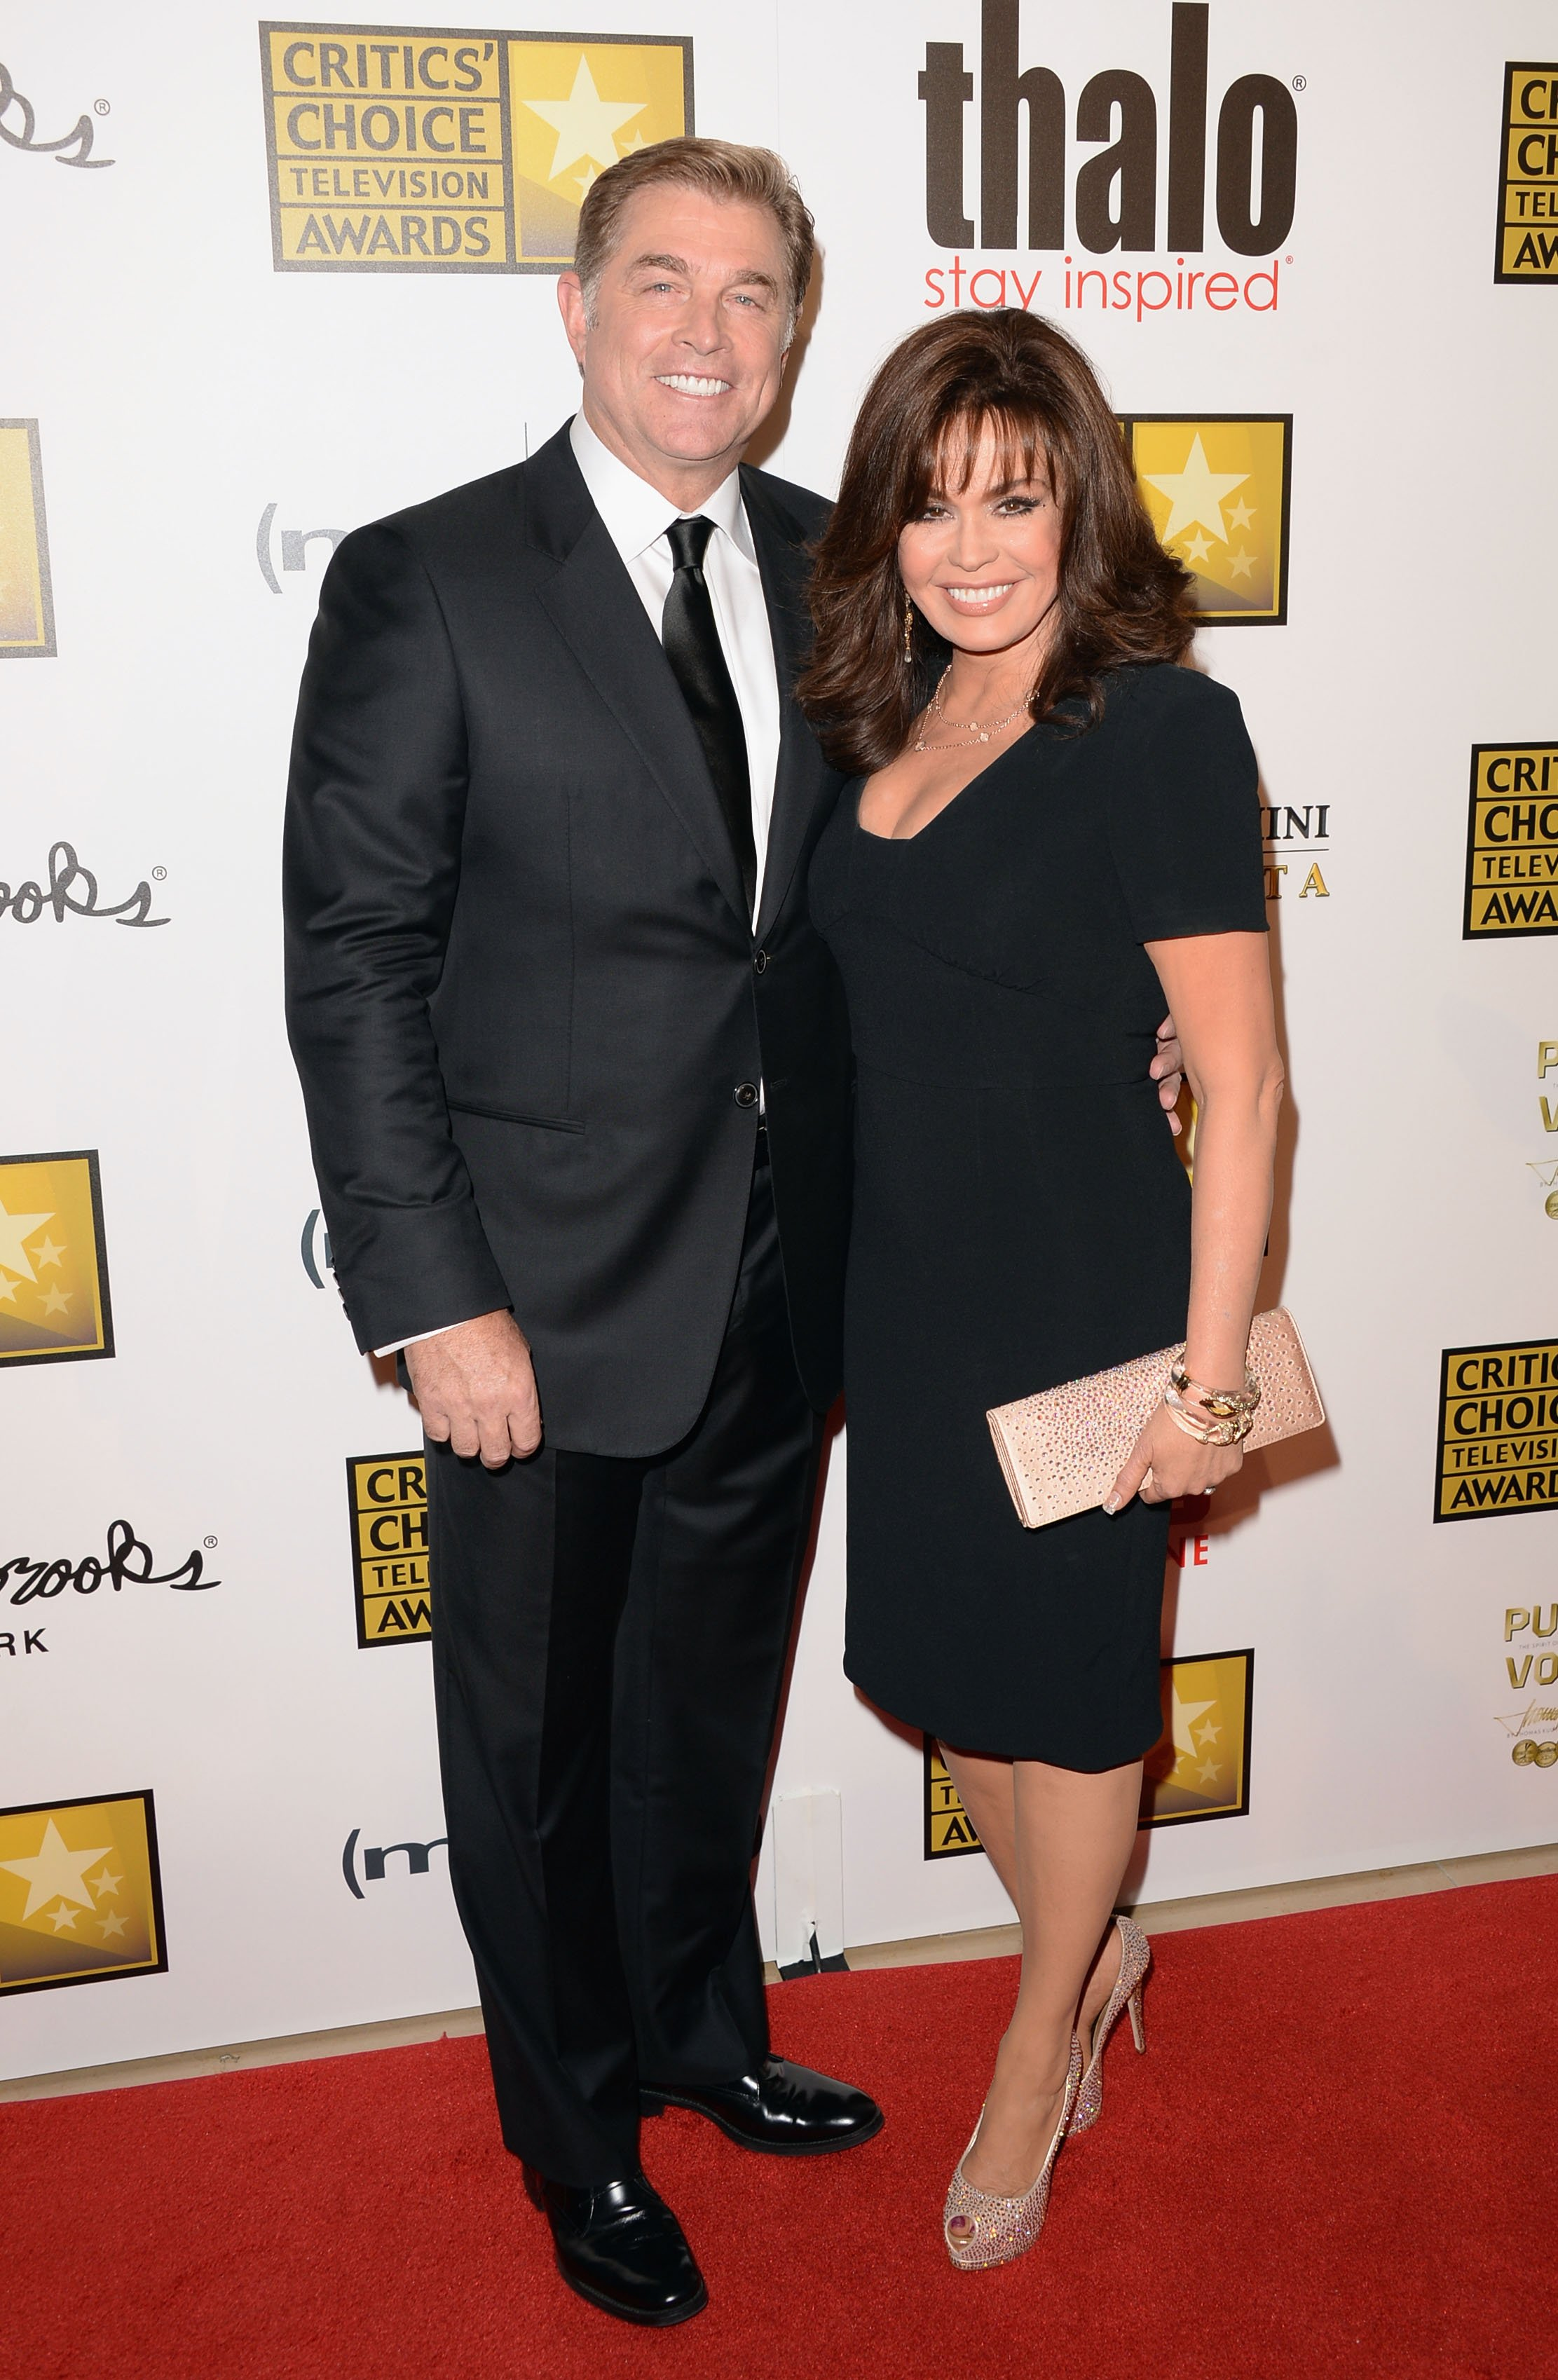 Steve Craig and Marie Osmond at the Critics' Choice Television Awards on June 10, 2013 | Photo: GettyImages